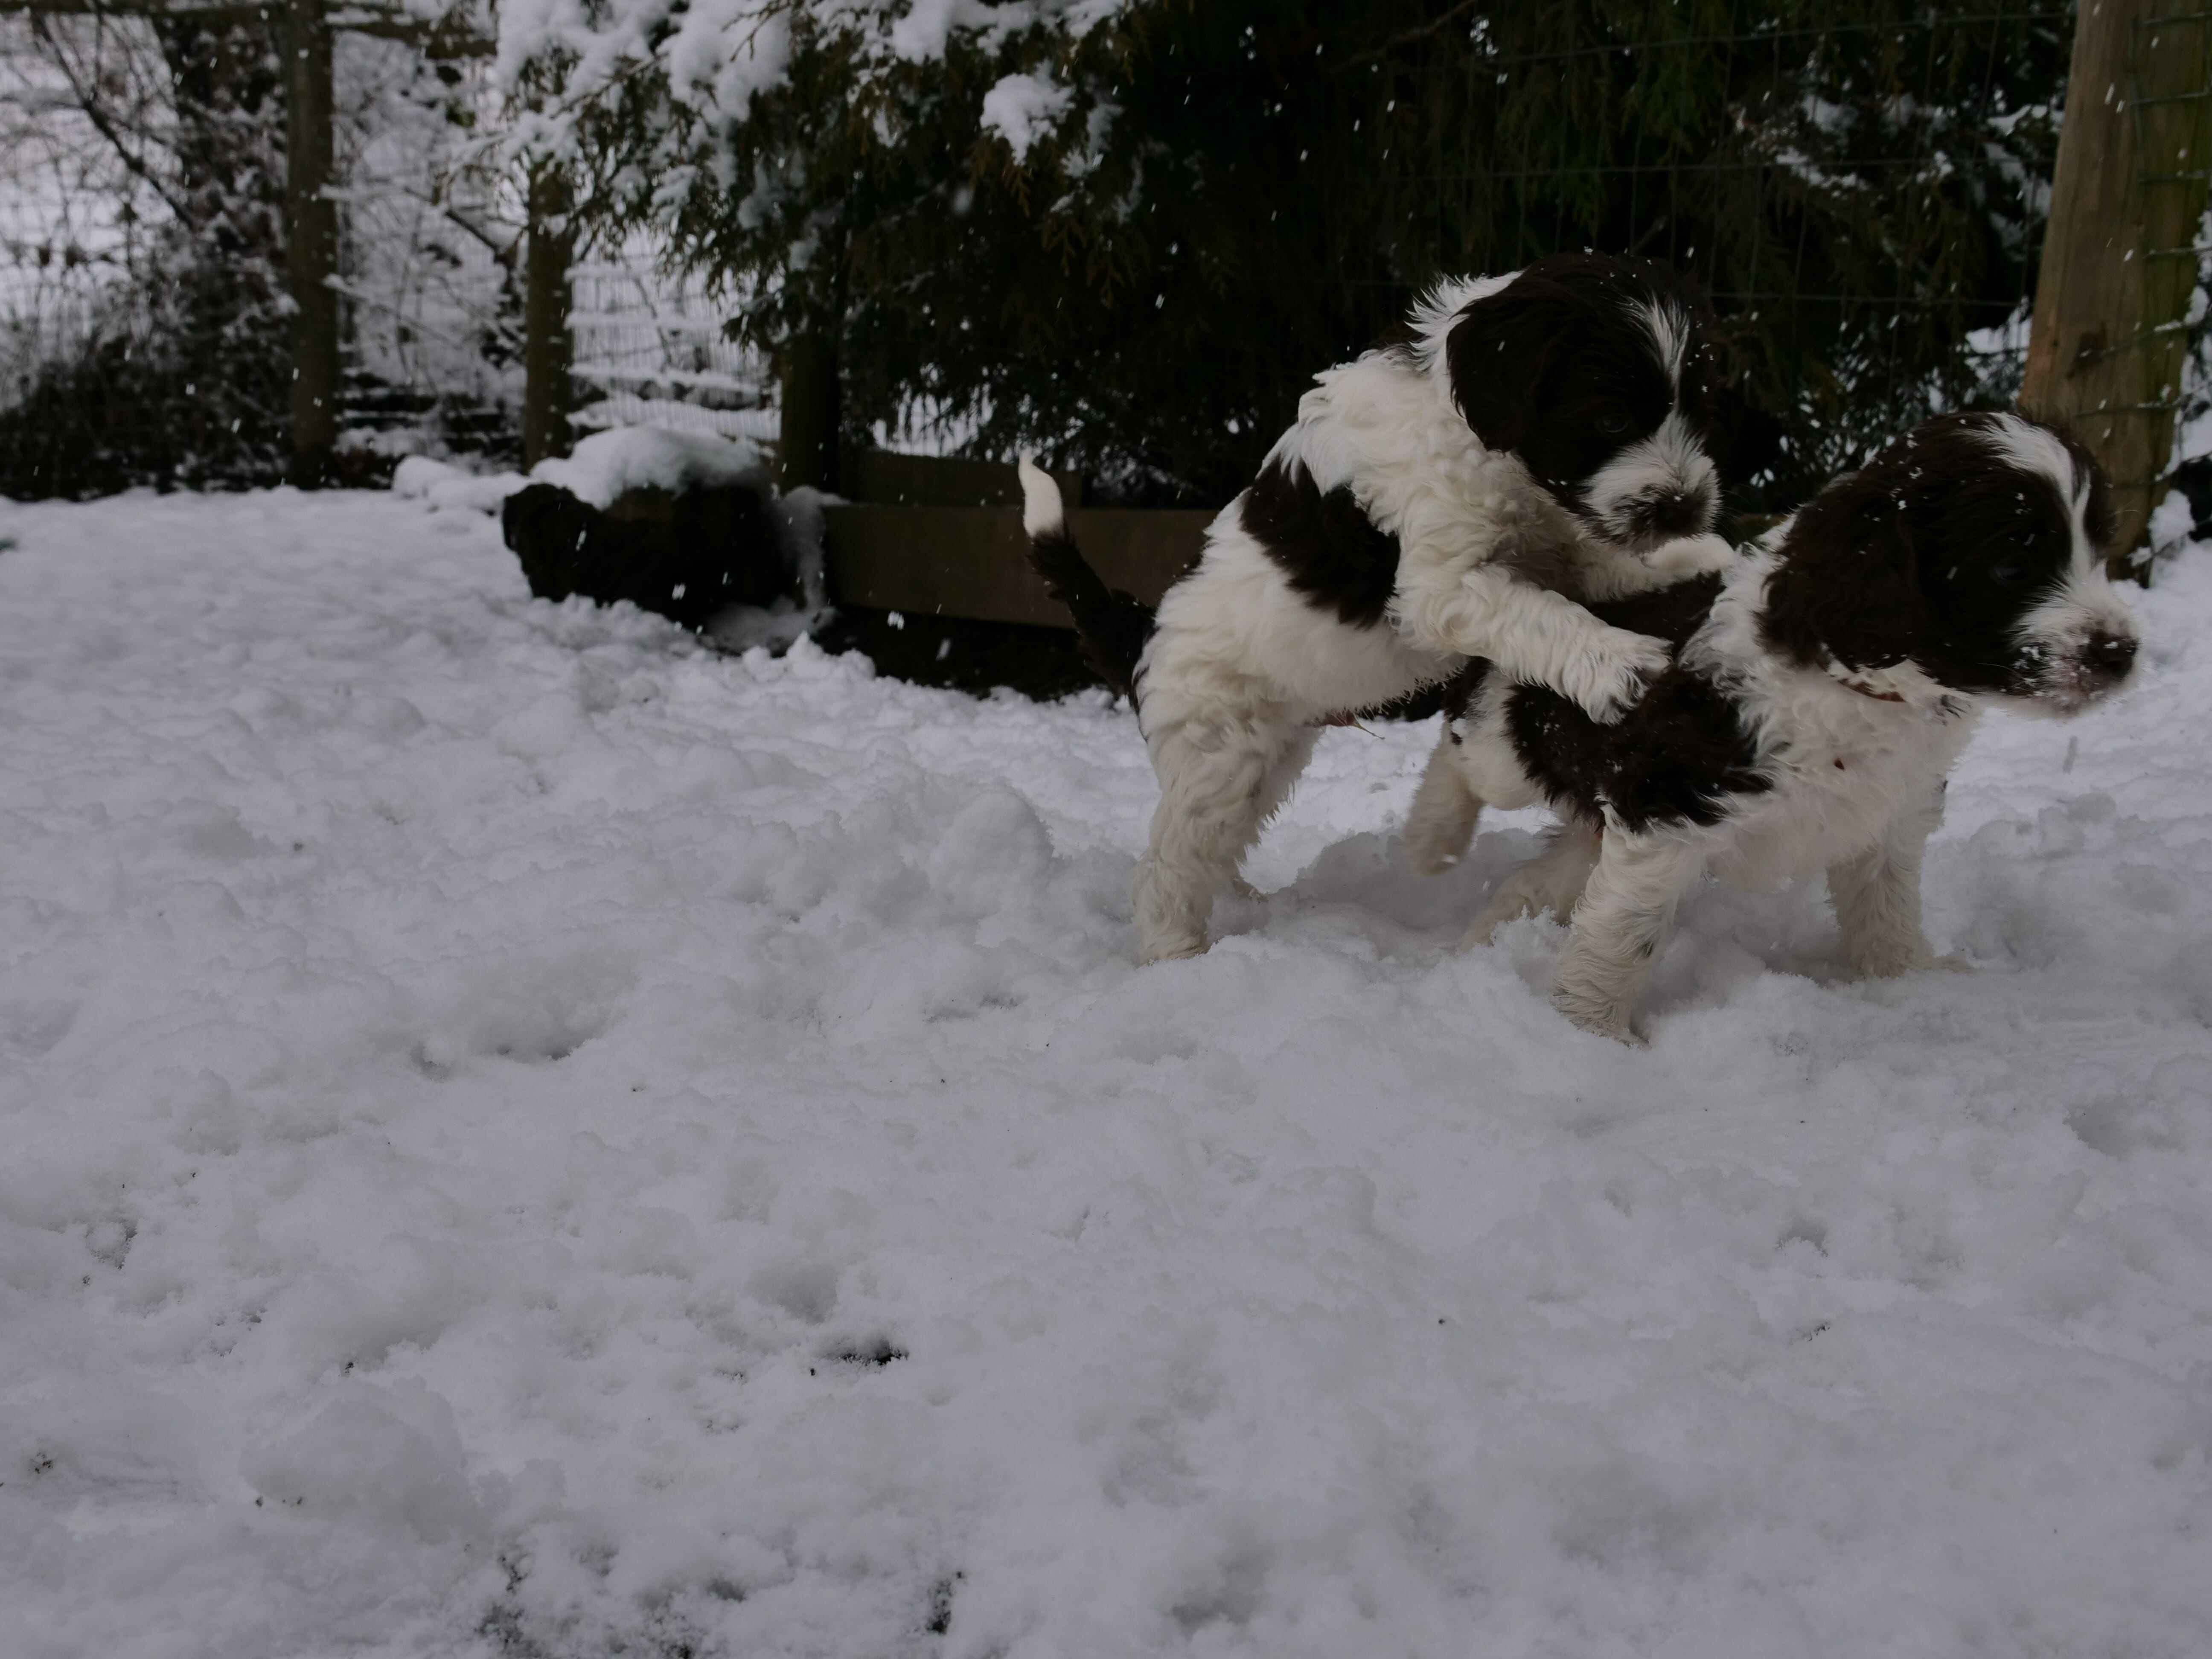 Two 5-week old black and white labradoodle puppies playing in the snow. One puppy is jumping on the back of the other.